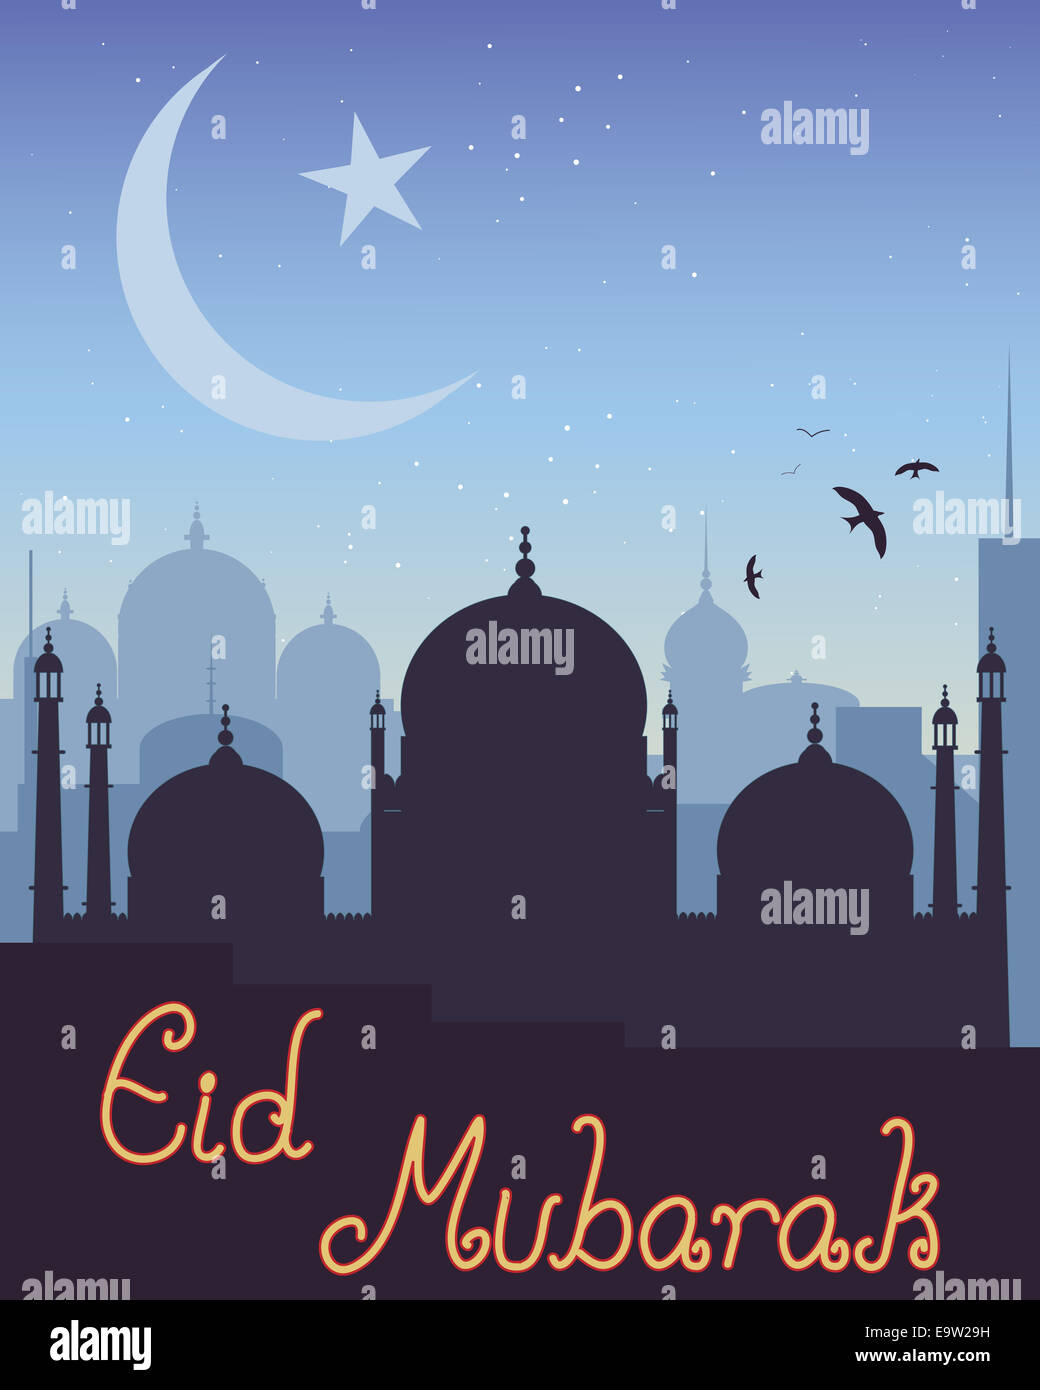 Illustration of islamic skyline with mosque star and crescent illustration of islamic skyline with mosque star and crescent moon symbol on a greeting card for the festival of eid mubarak biocorpaavc Gallery